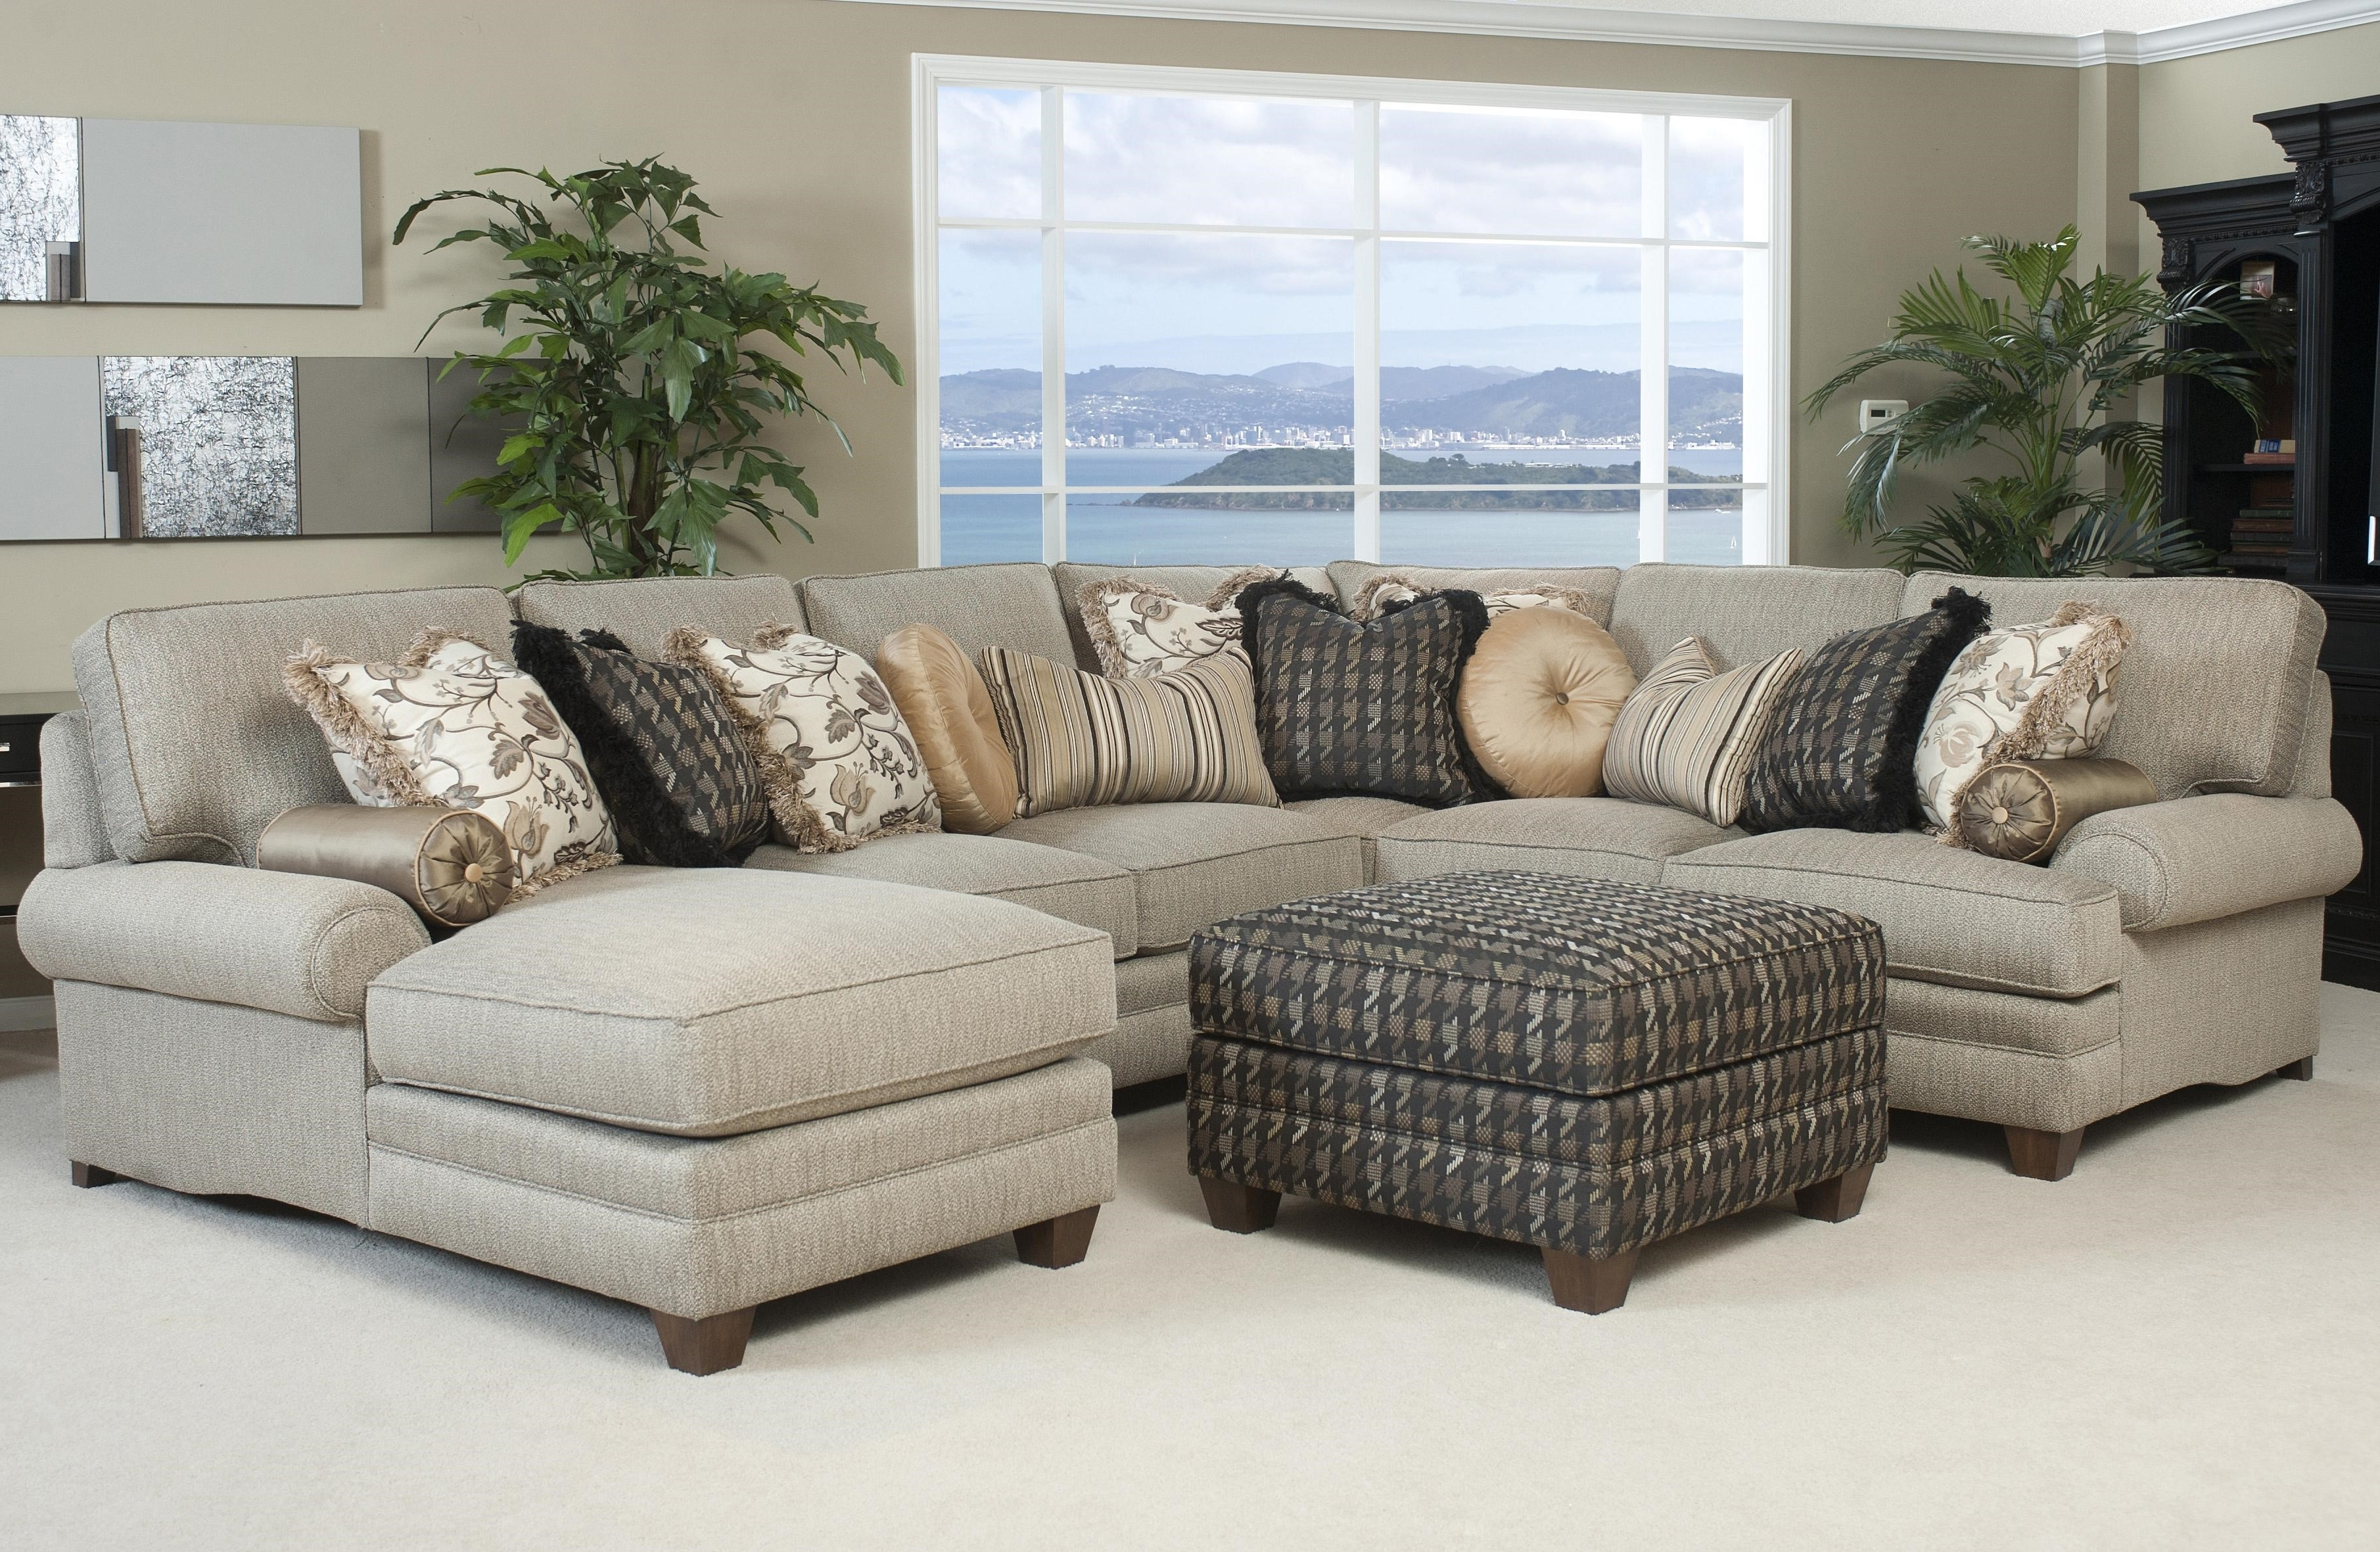 Best And Newest Kingston Ontario Sectional Sofas In Furniture : Unique Most Comfortable Sectional Couches 19 Sofa (View 8 of 20)